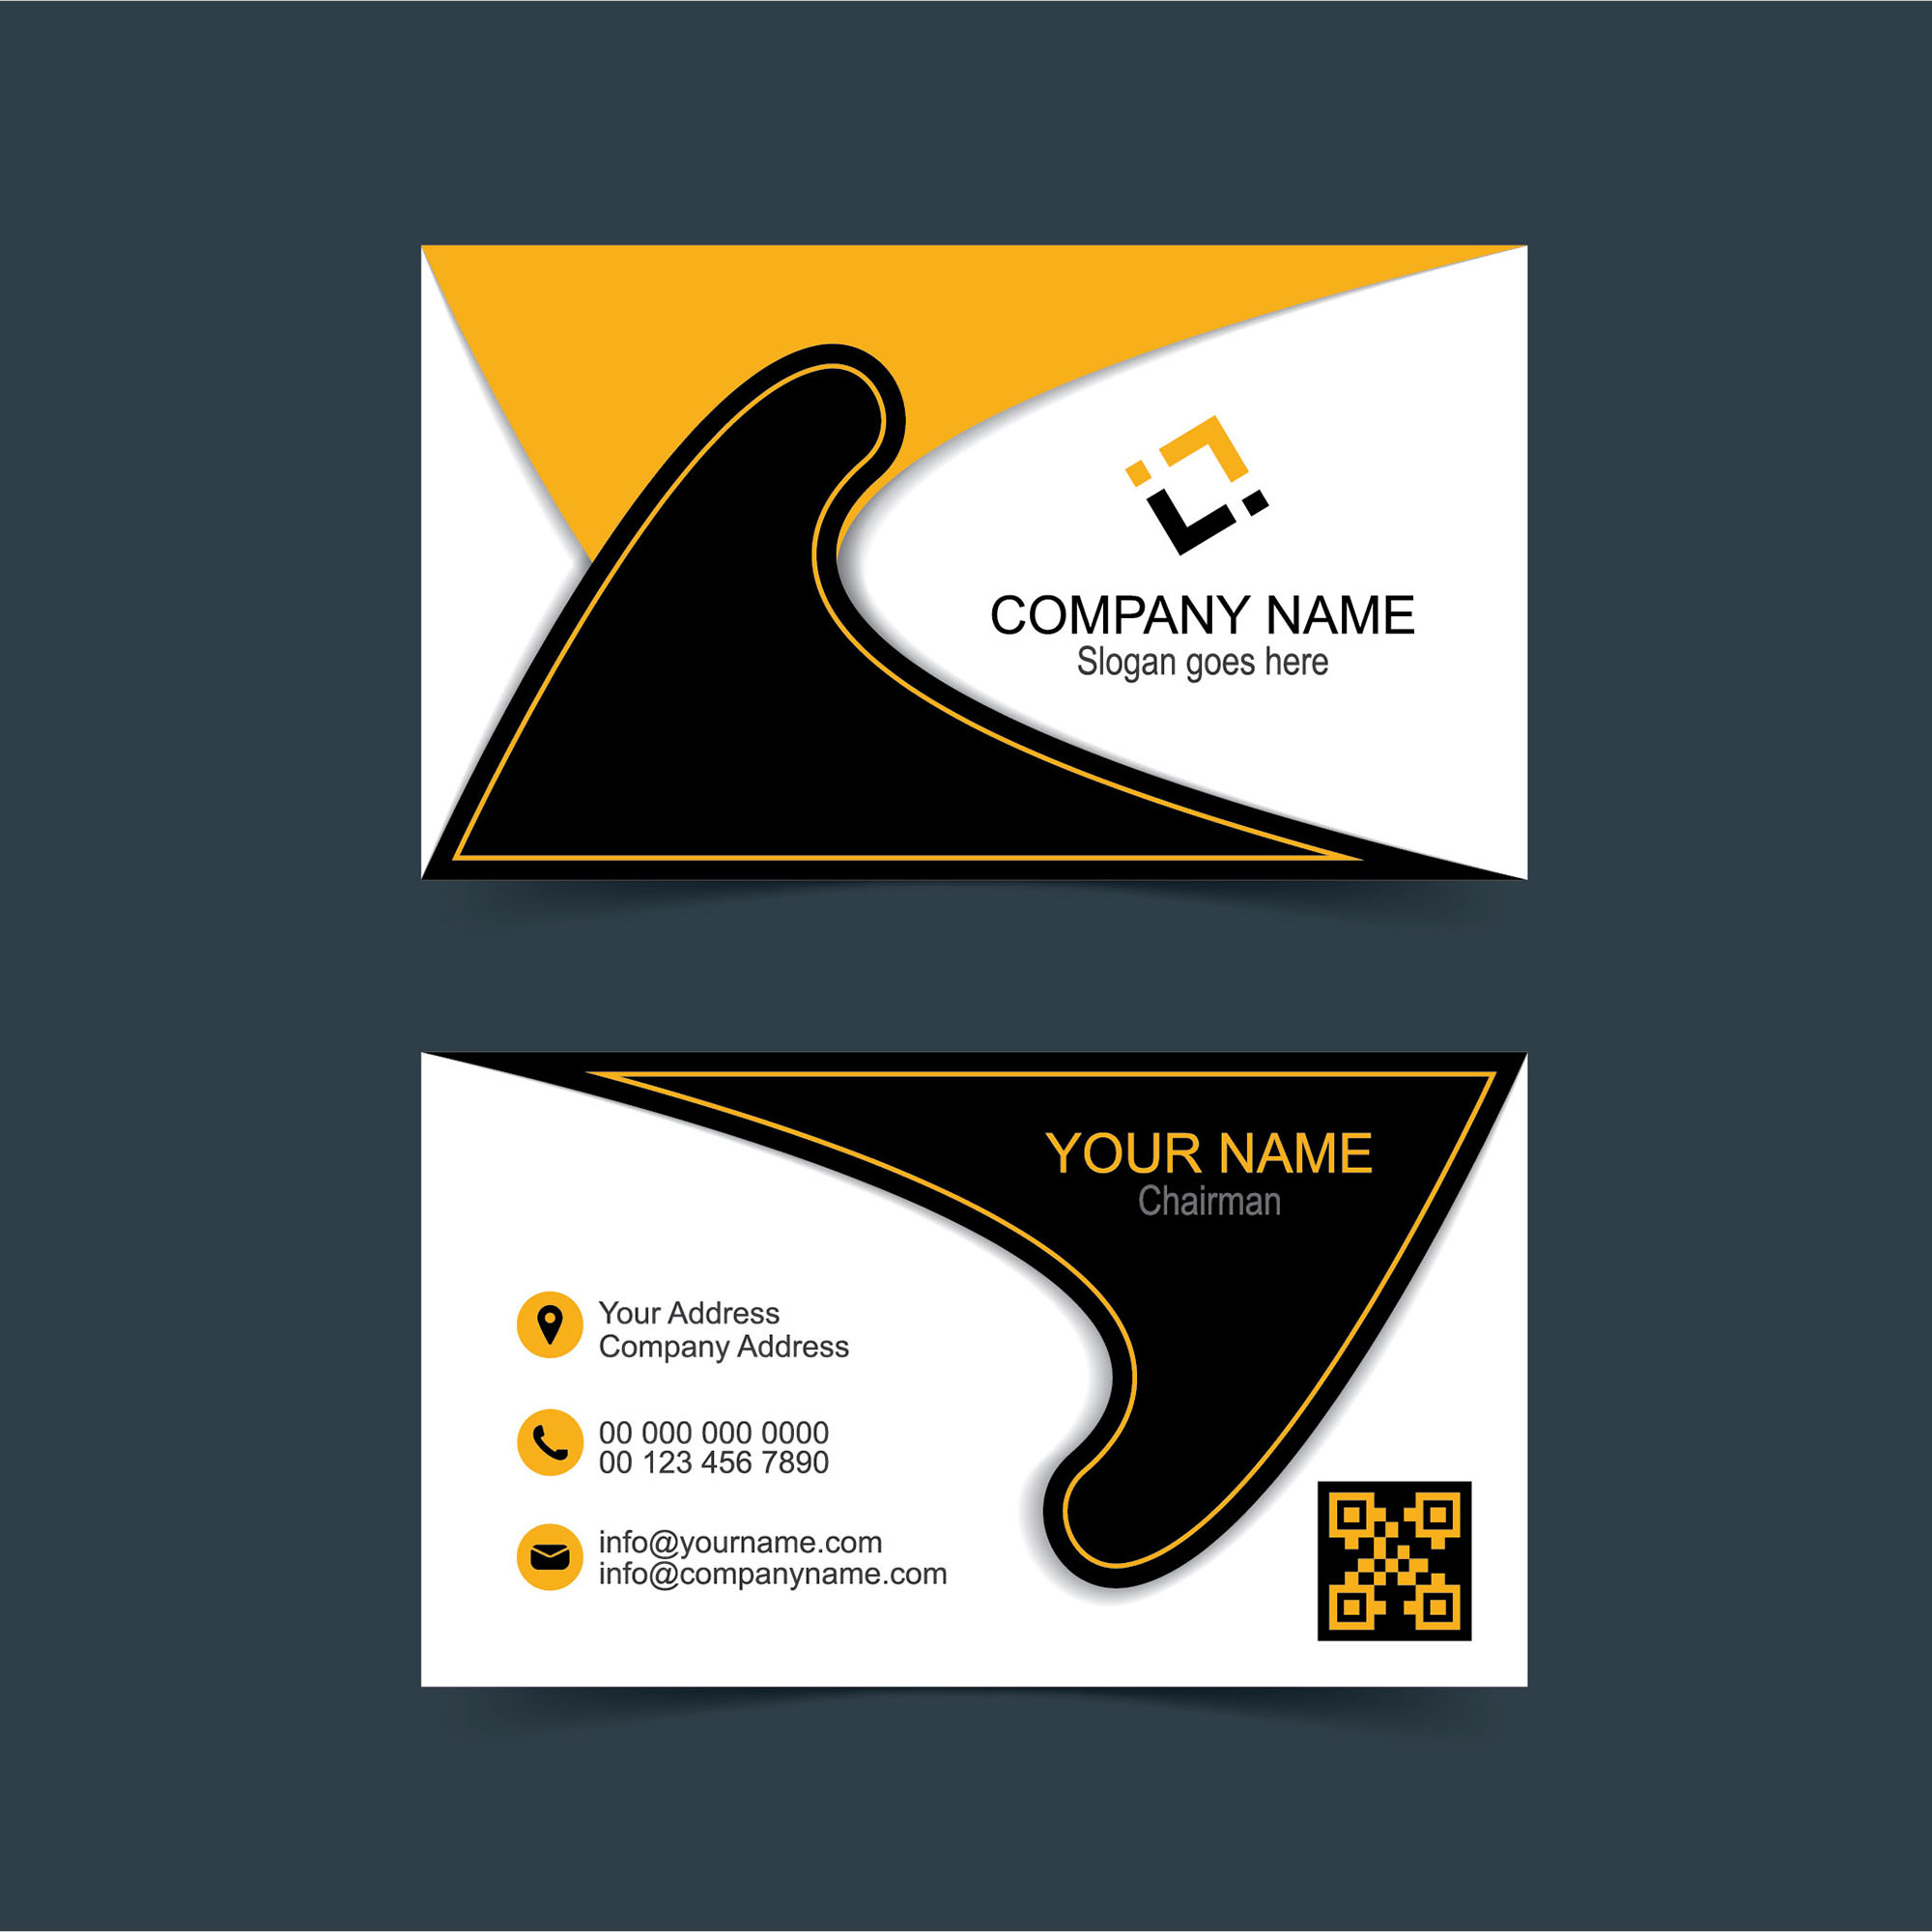 Professional Designer Business Card Free Download Wisxicom - Free business card layout template